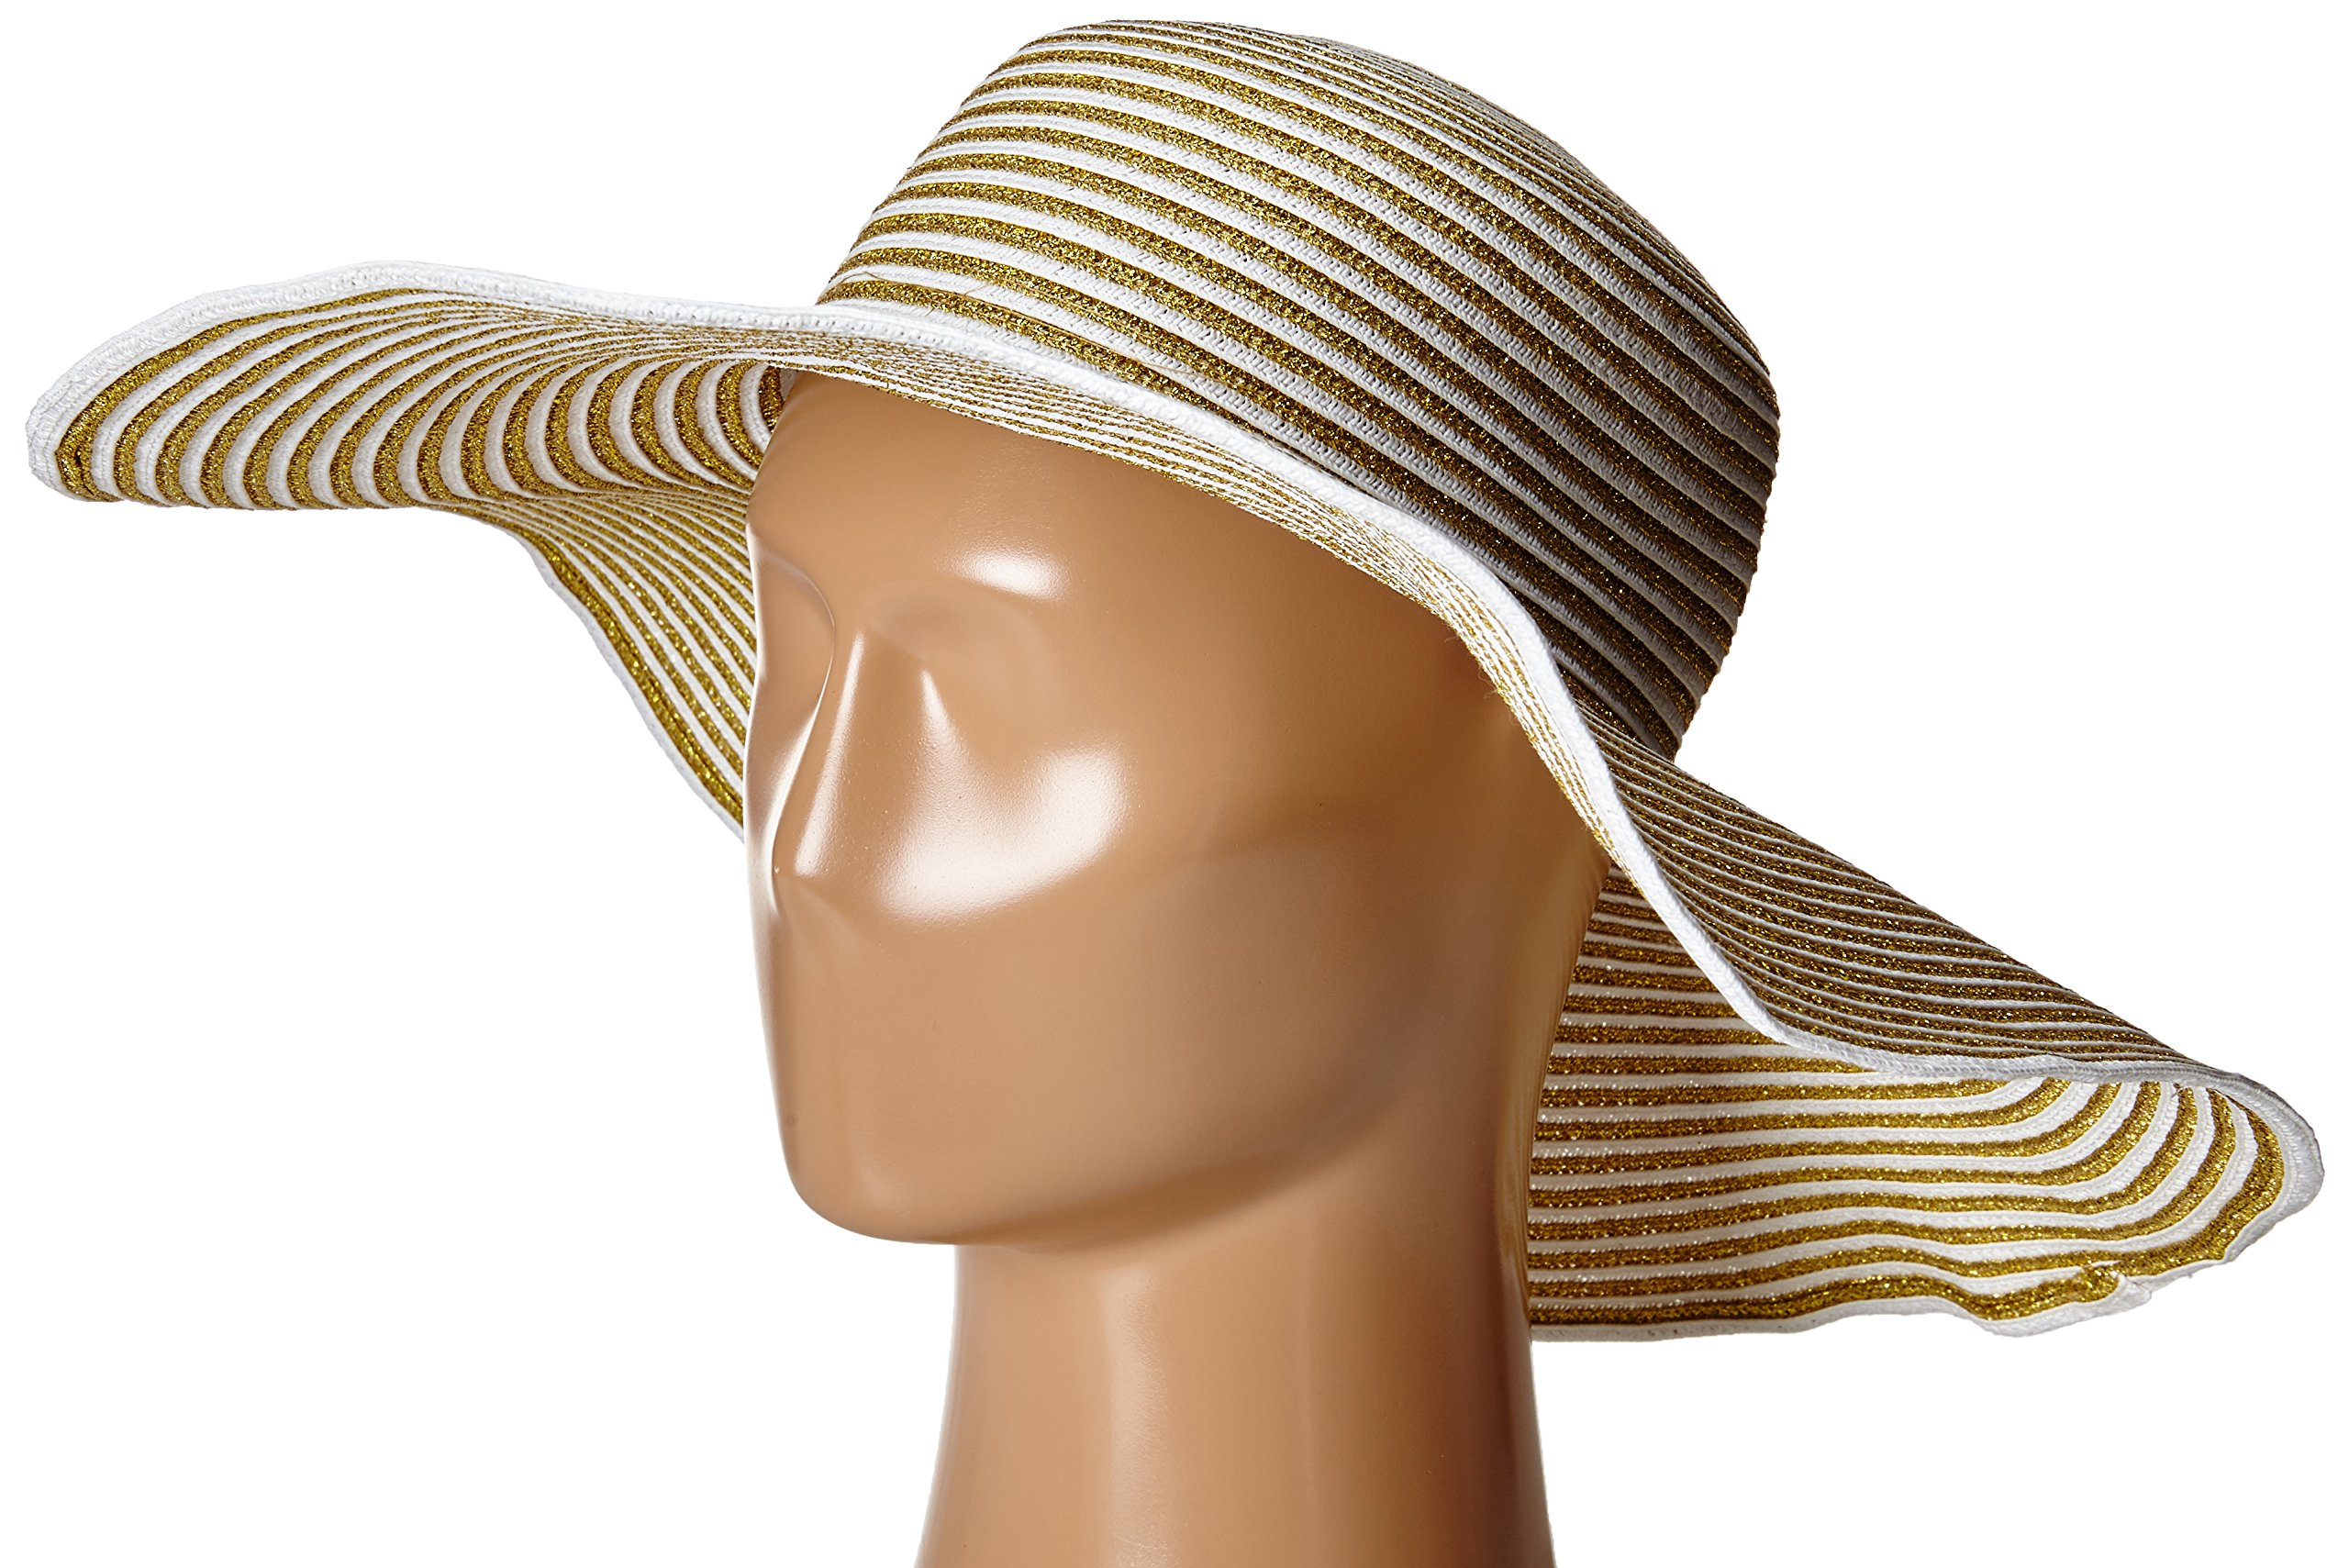 Gottex Women's Morgana Metallic Straw Packable Sun Hat, Rated UPF 50+ For Max Sun Protection, White/Gold, One Size